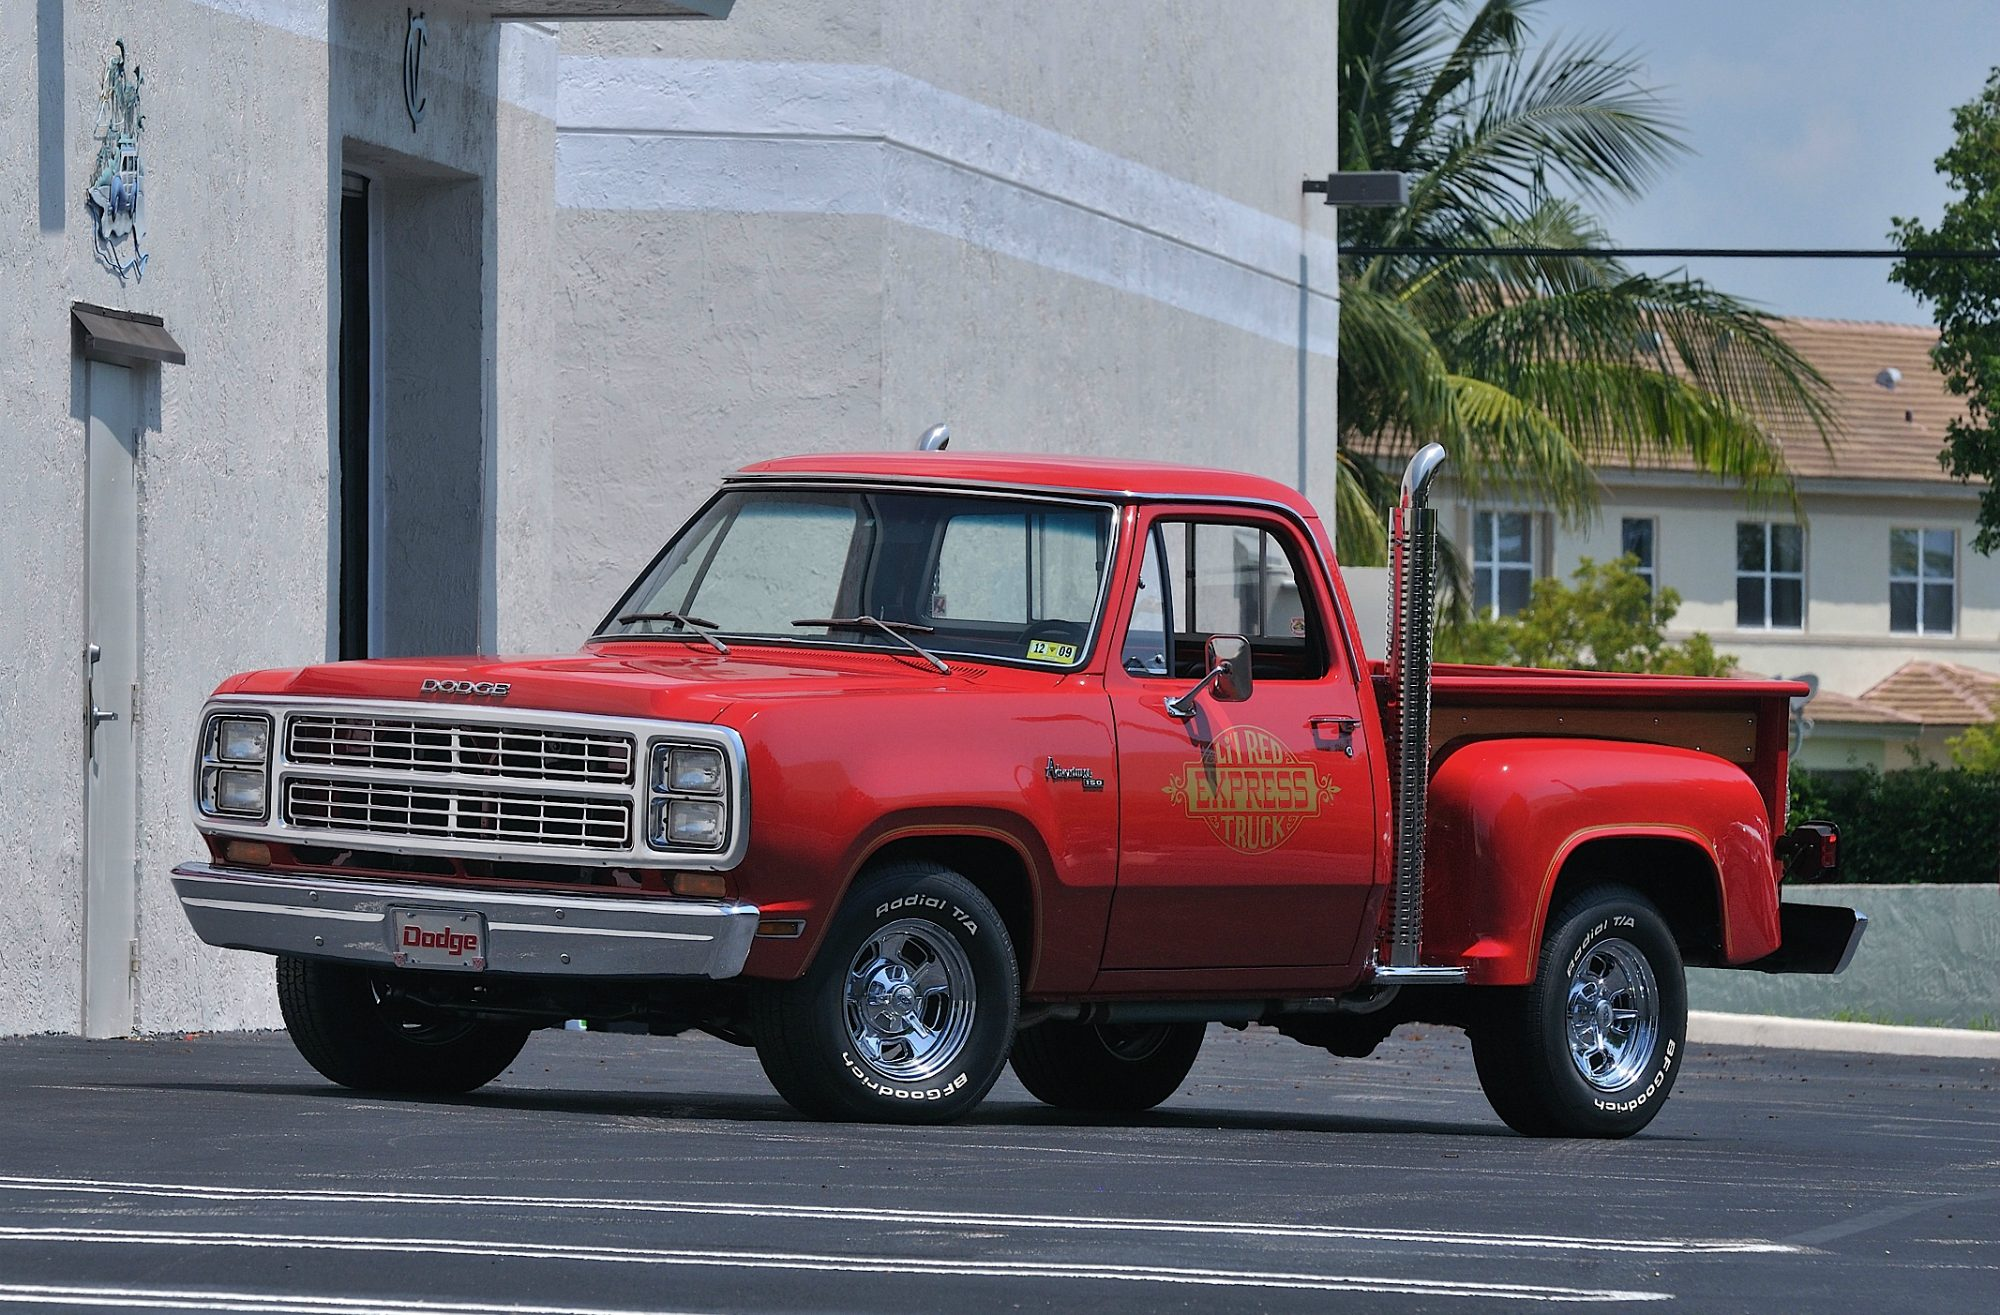 50 Of The Coolest And Probably Best Trucks Suvs Ever Made 1980 Dodge Pickup Truck Badass Cool Lil Red